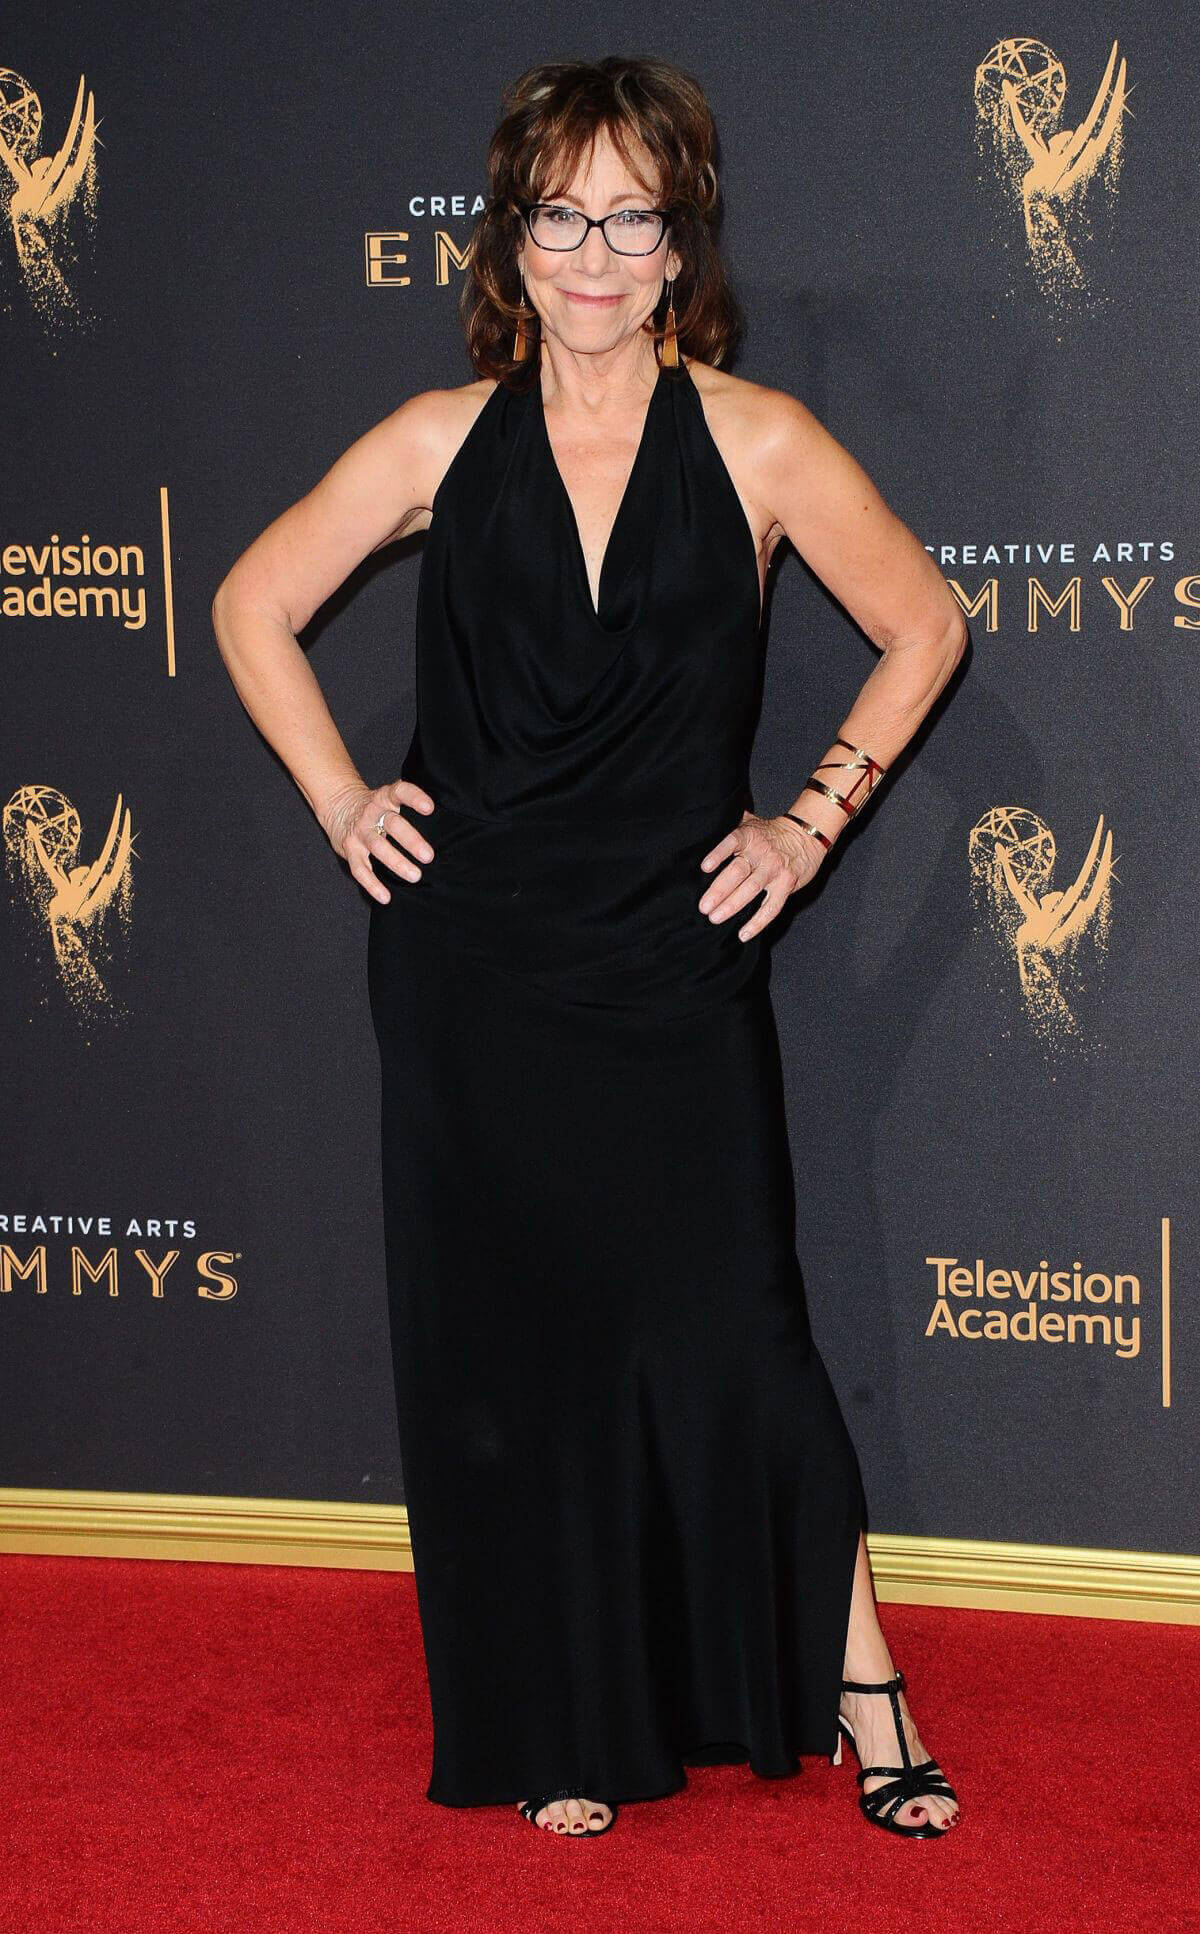 Mindy Sterling at Creative Arts Emmy Awards in Los Angeles